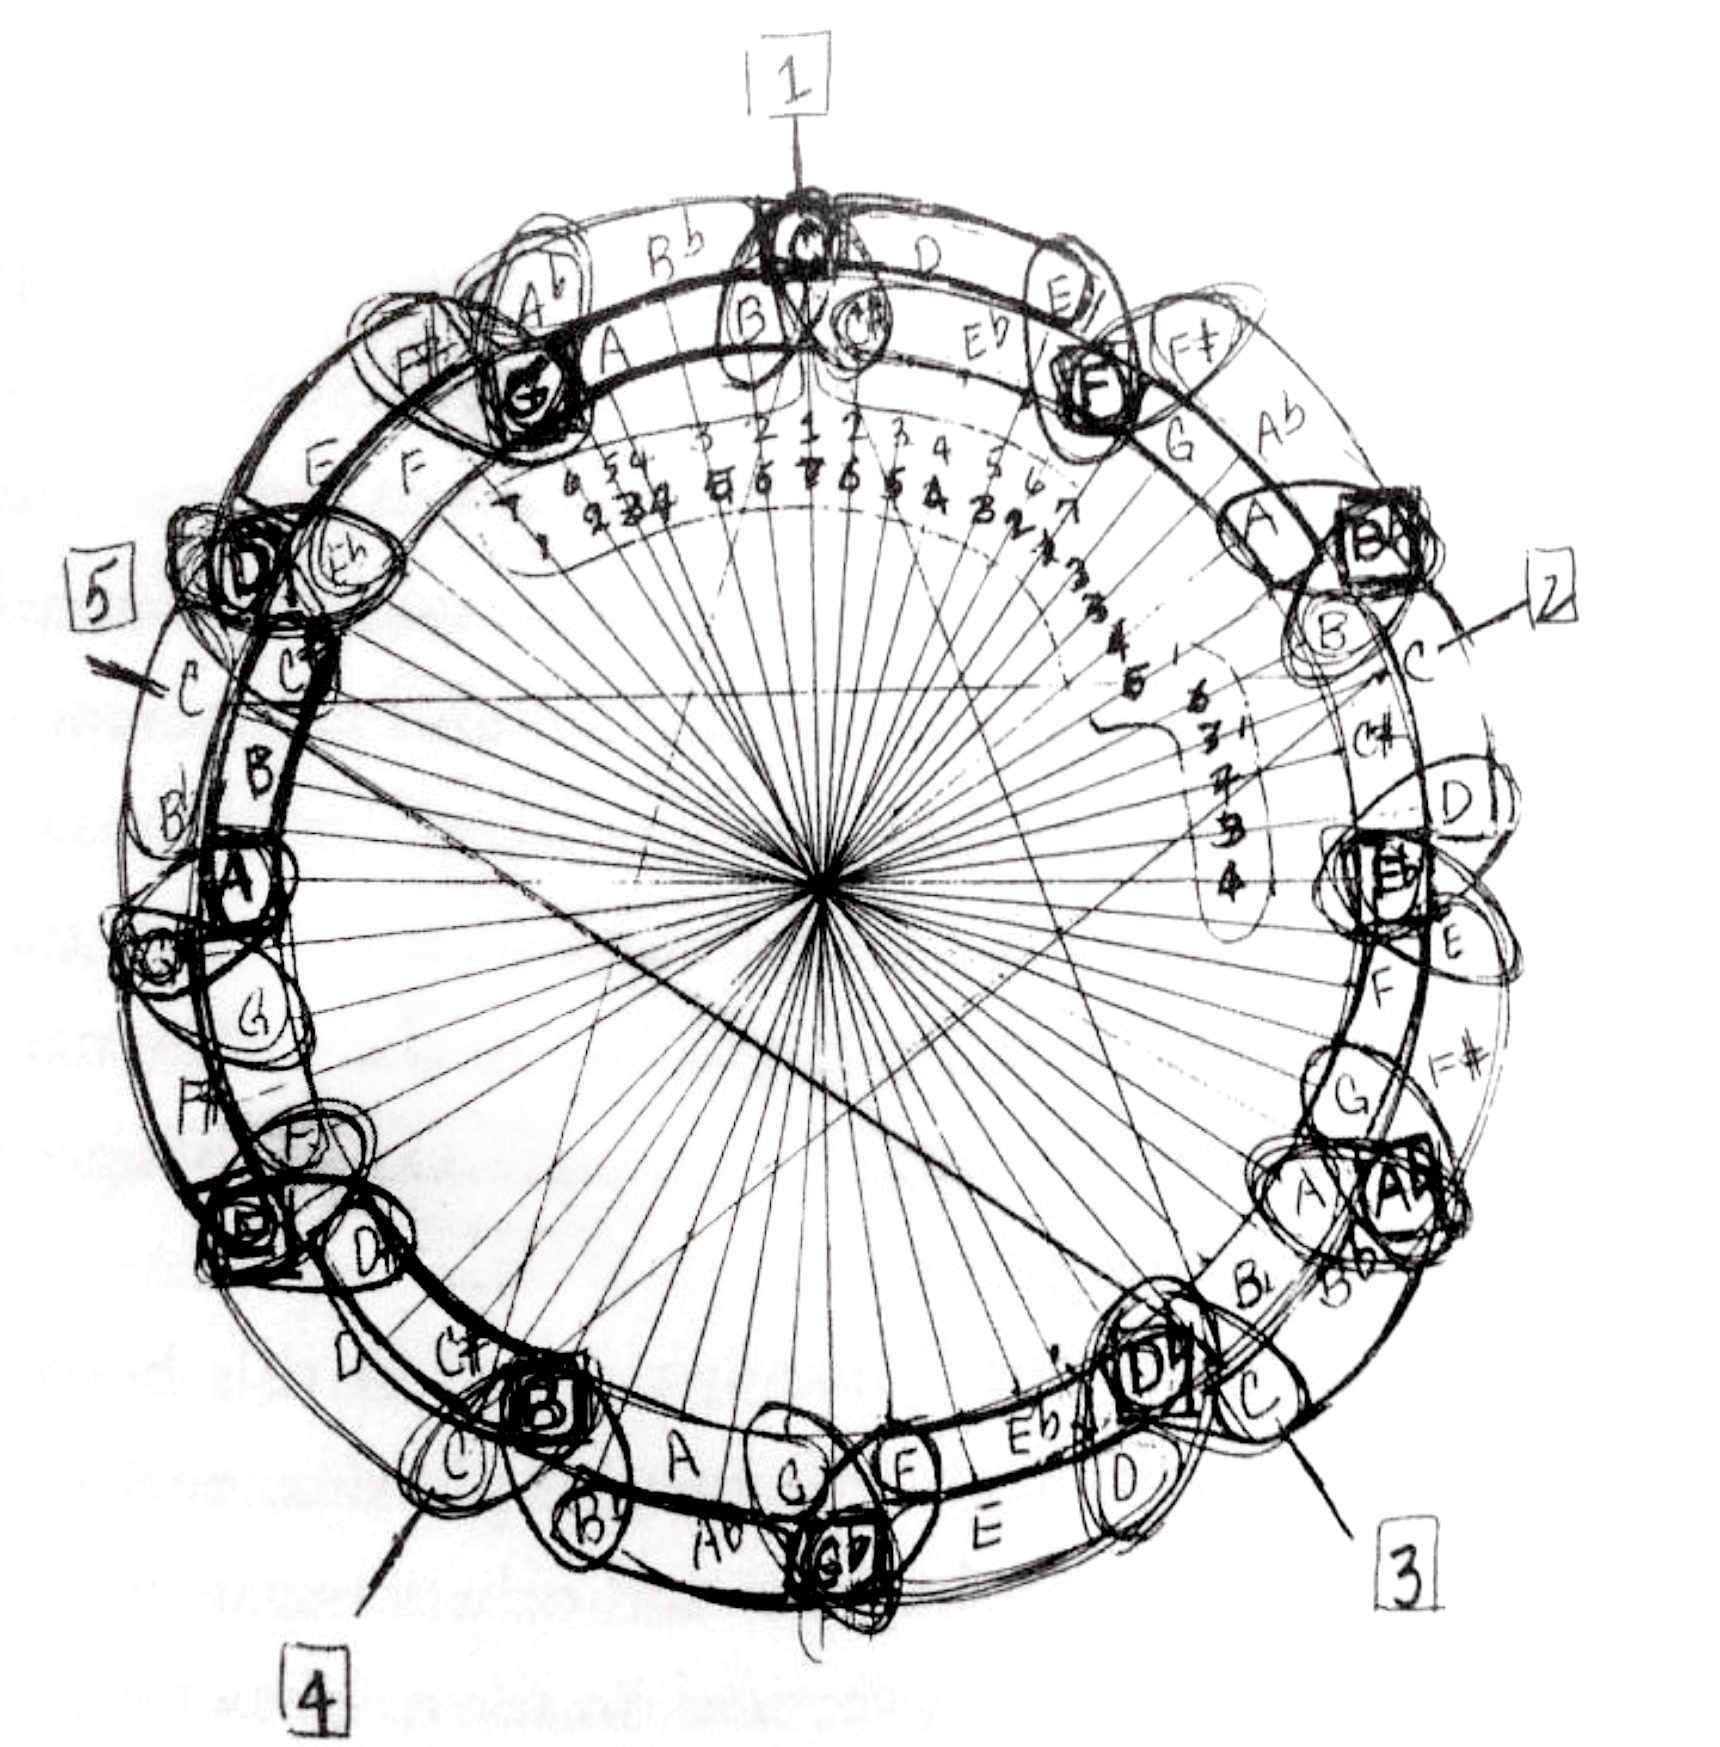 John coltranes drawing of the mathematical soul of music aleph known as the coltrane circle or